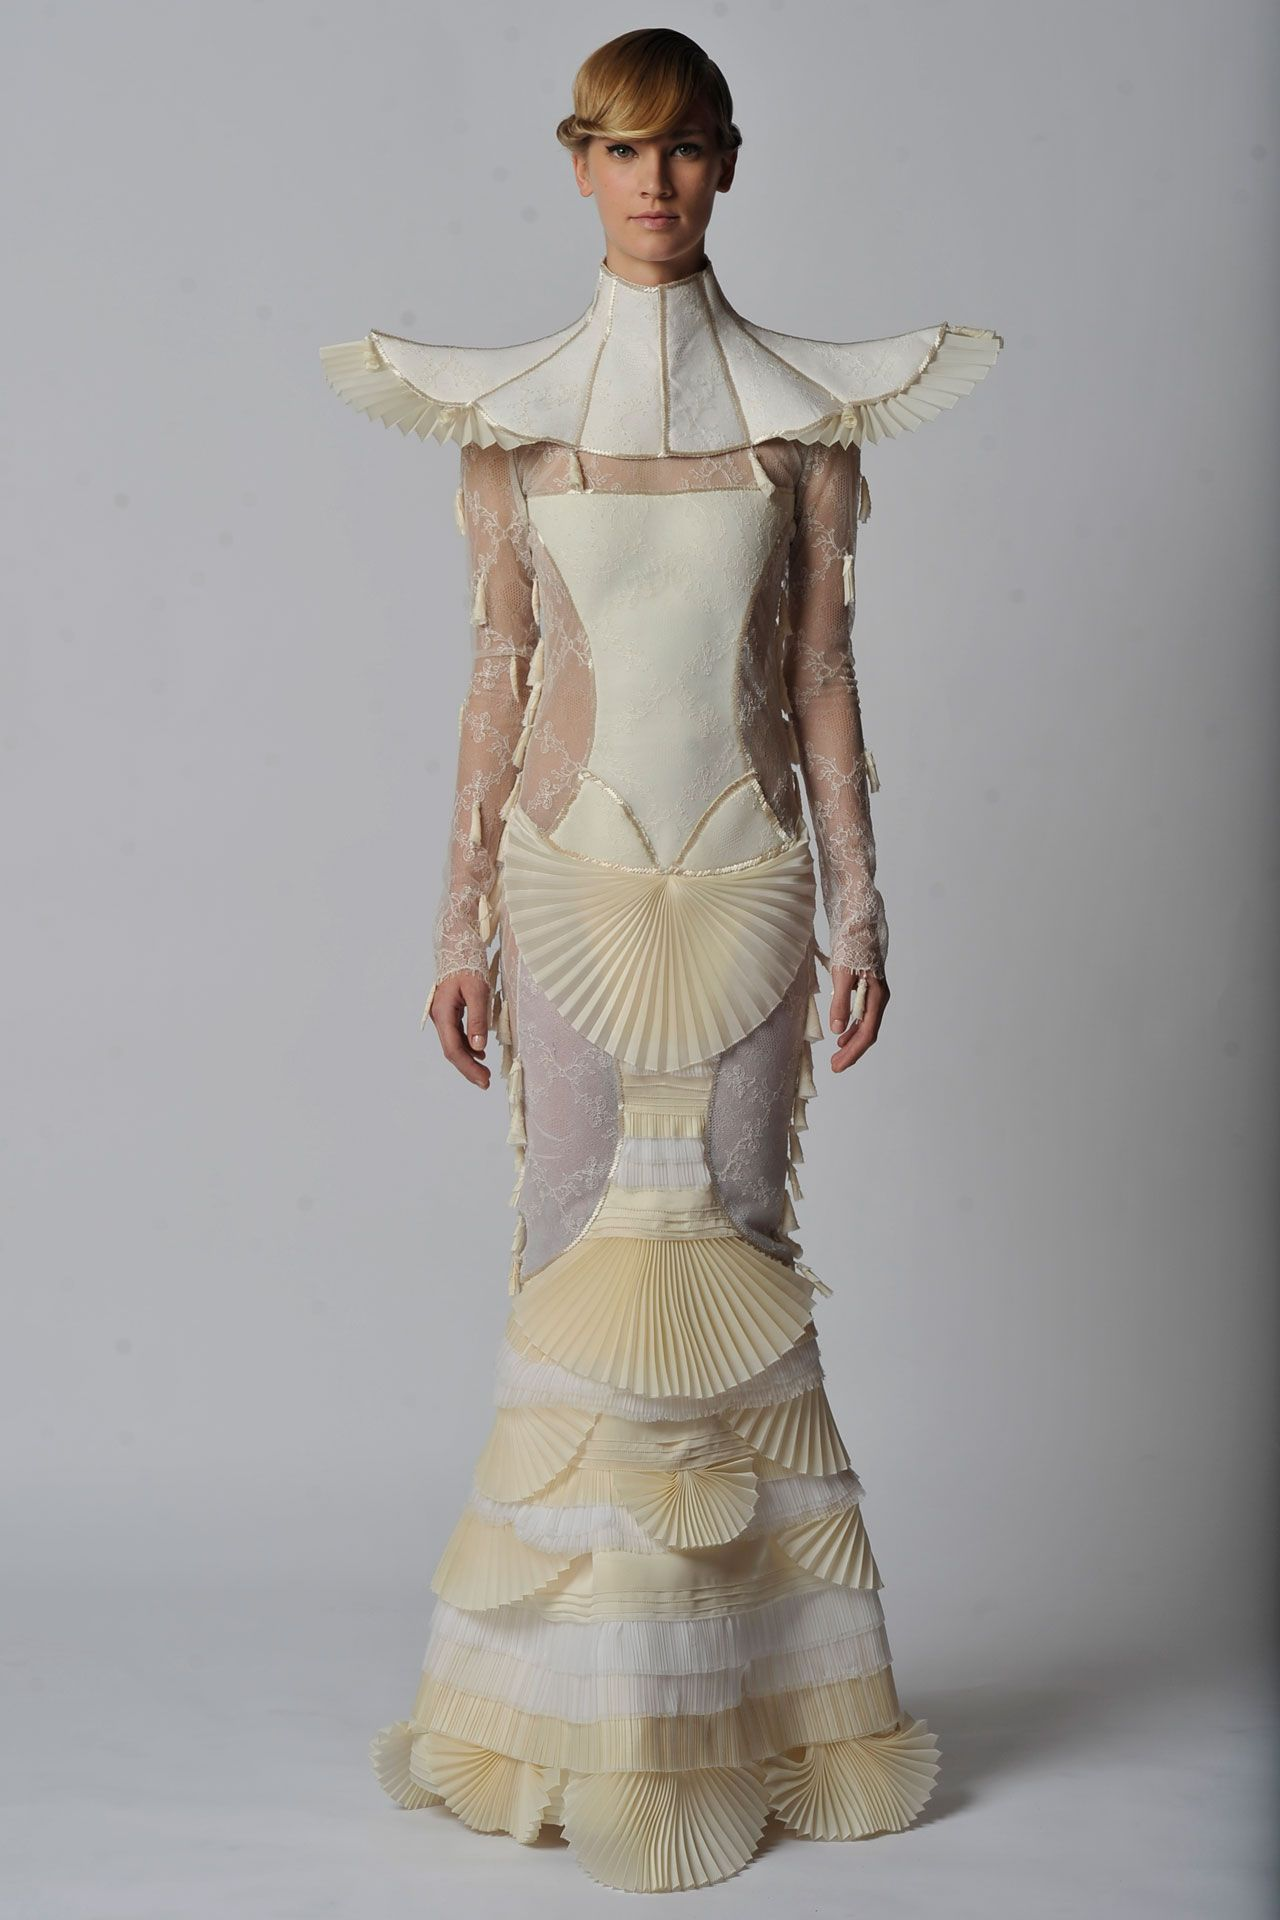 House Of Worth Creates Great Expectations Costumes (Vogue.com UK)